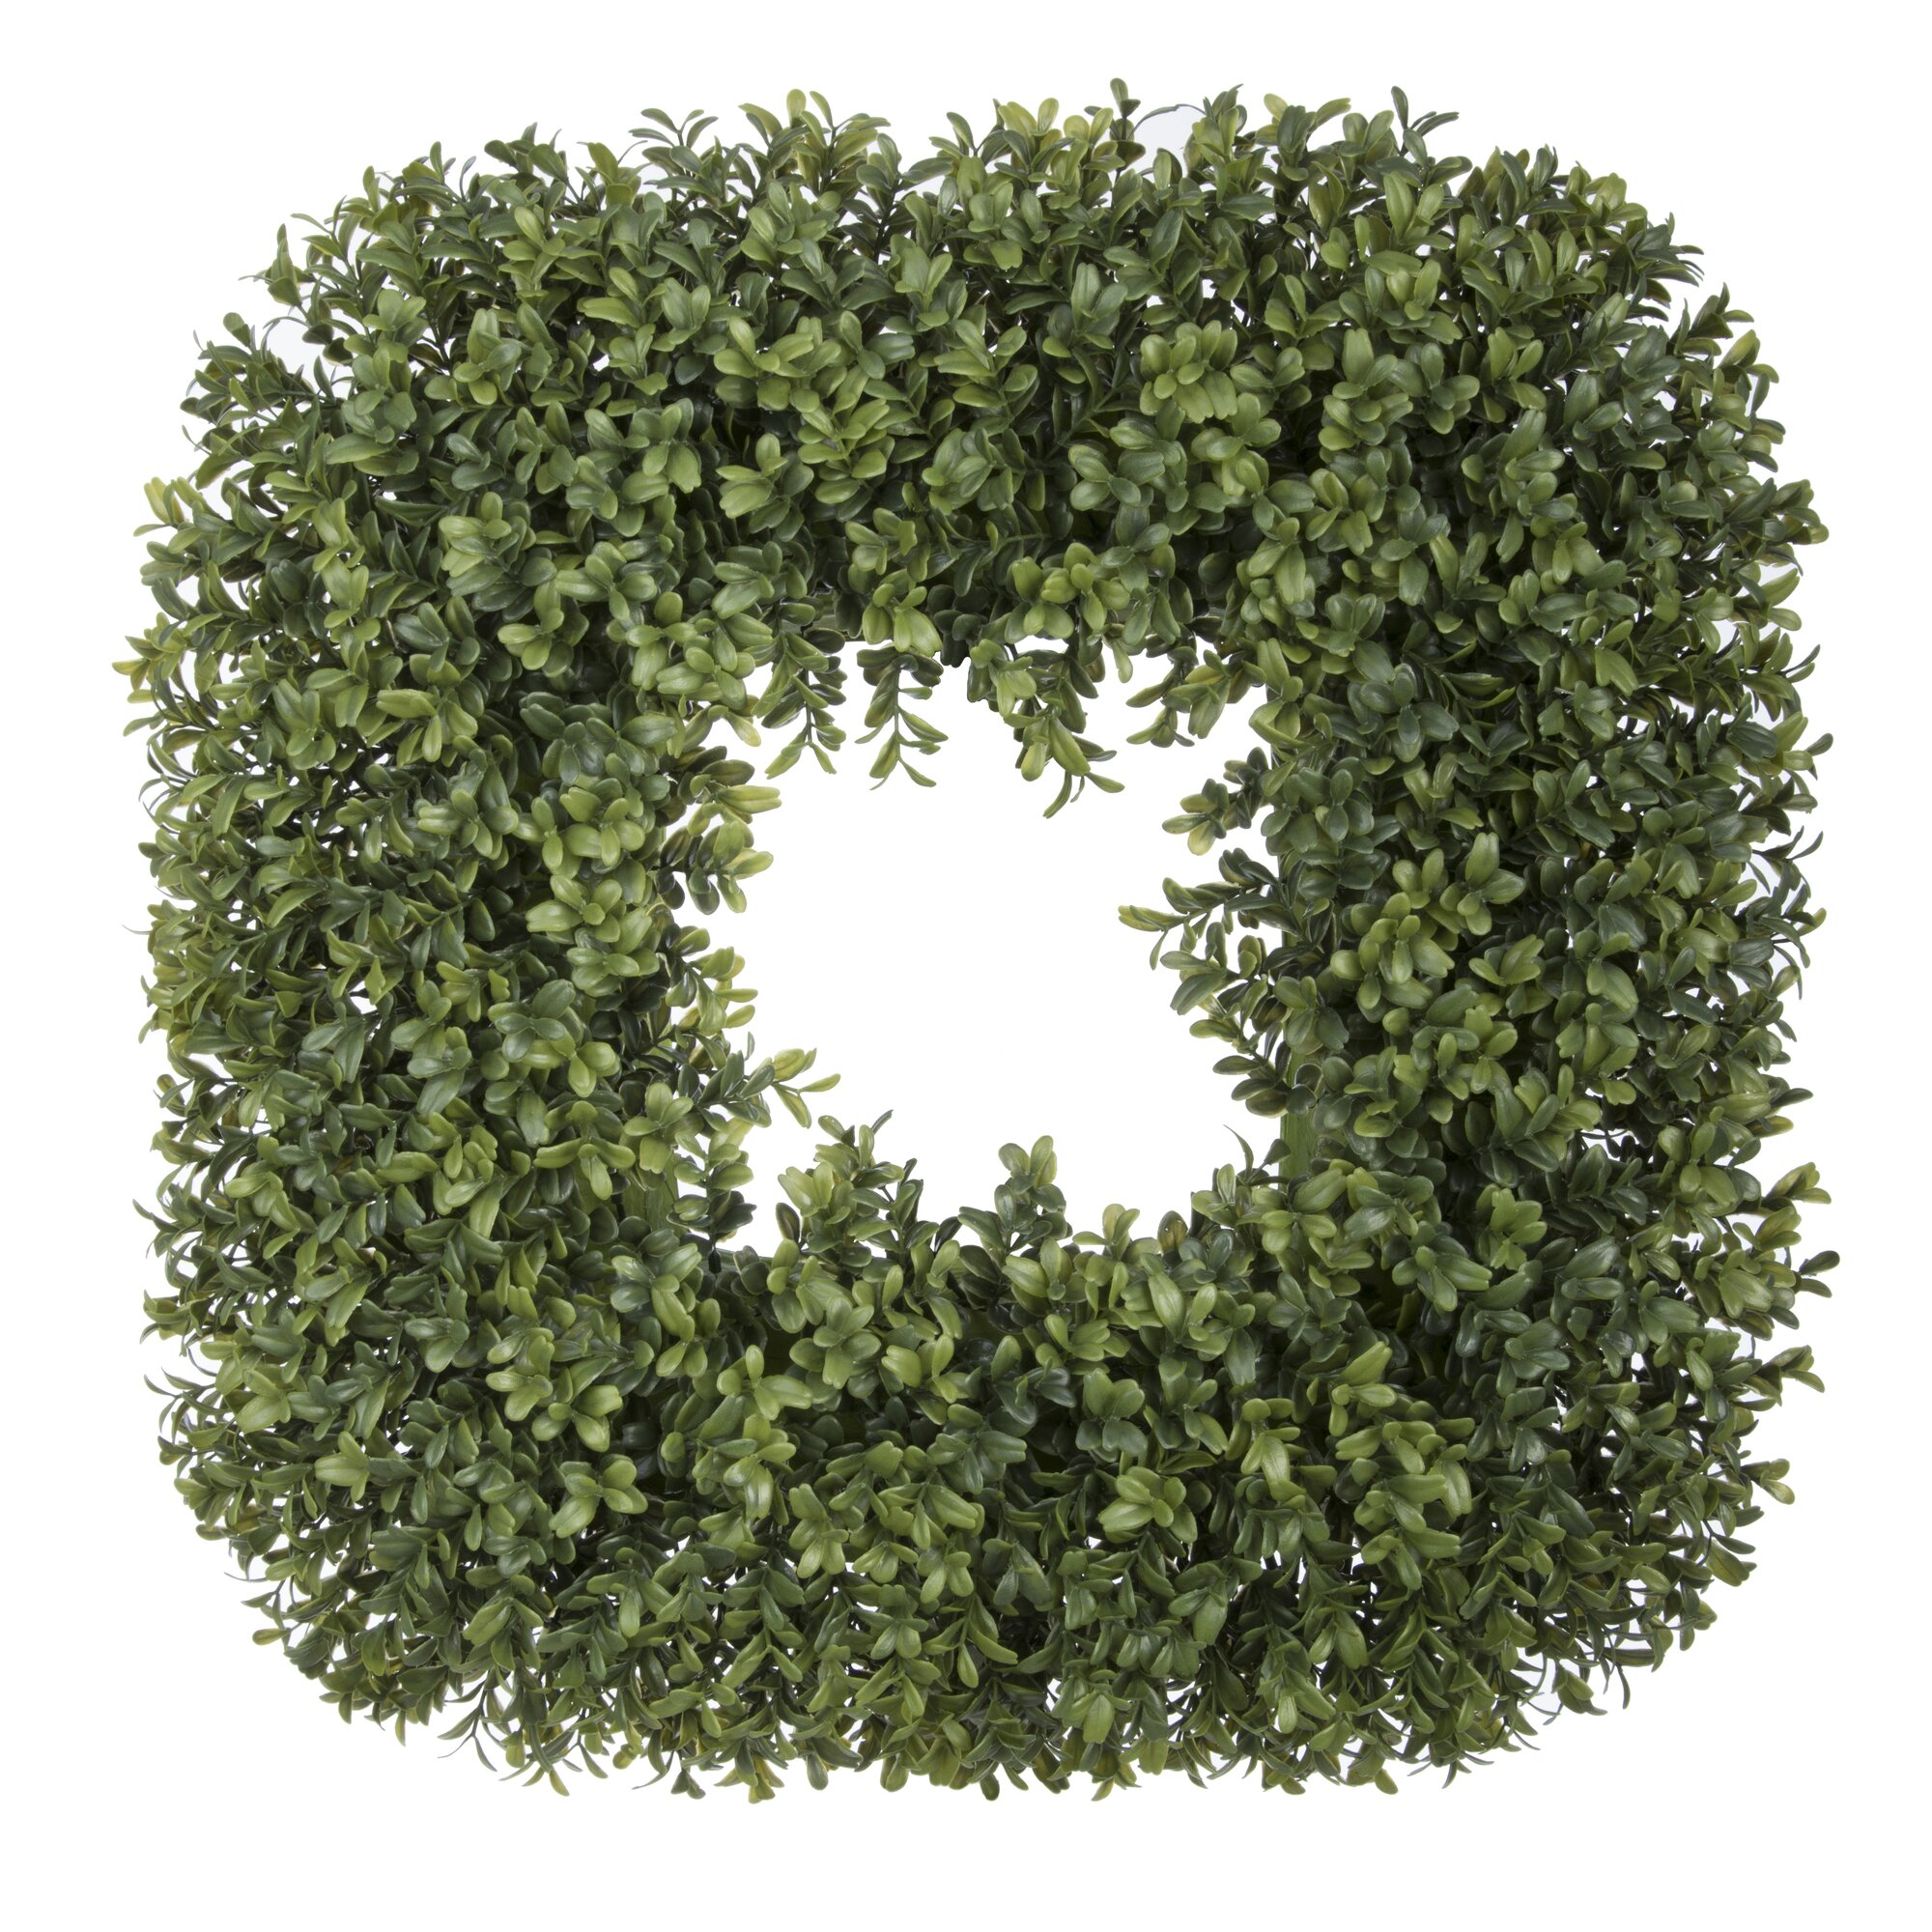 Artificial Boxwood Wreath For Sale - 19 artificial boxwood wreath